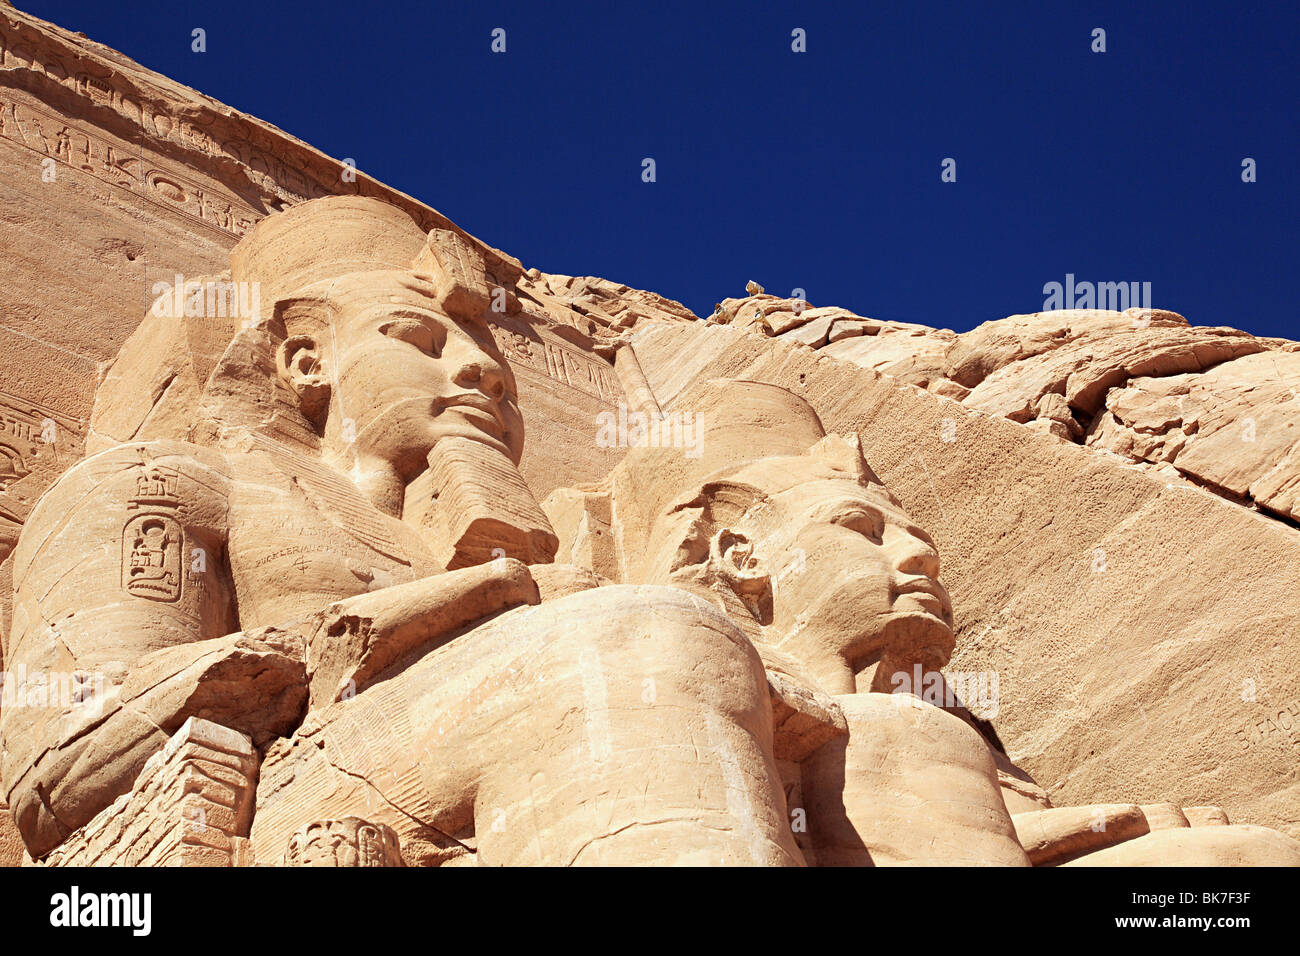 Temple Abou Simbel Egypte Photo Stock